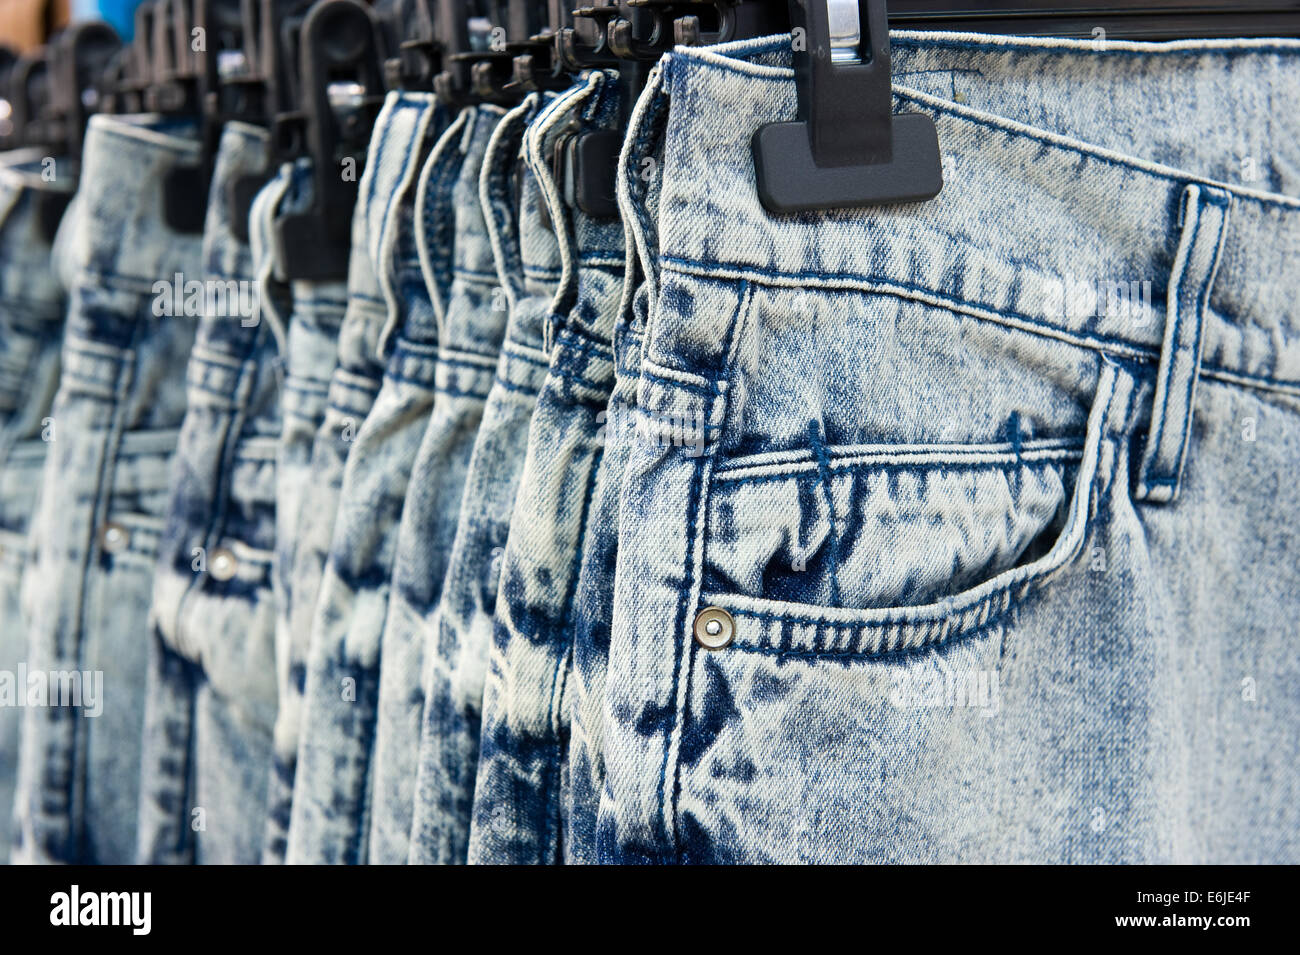 New blue jeans hanging in a shop - Stock Image